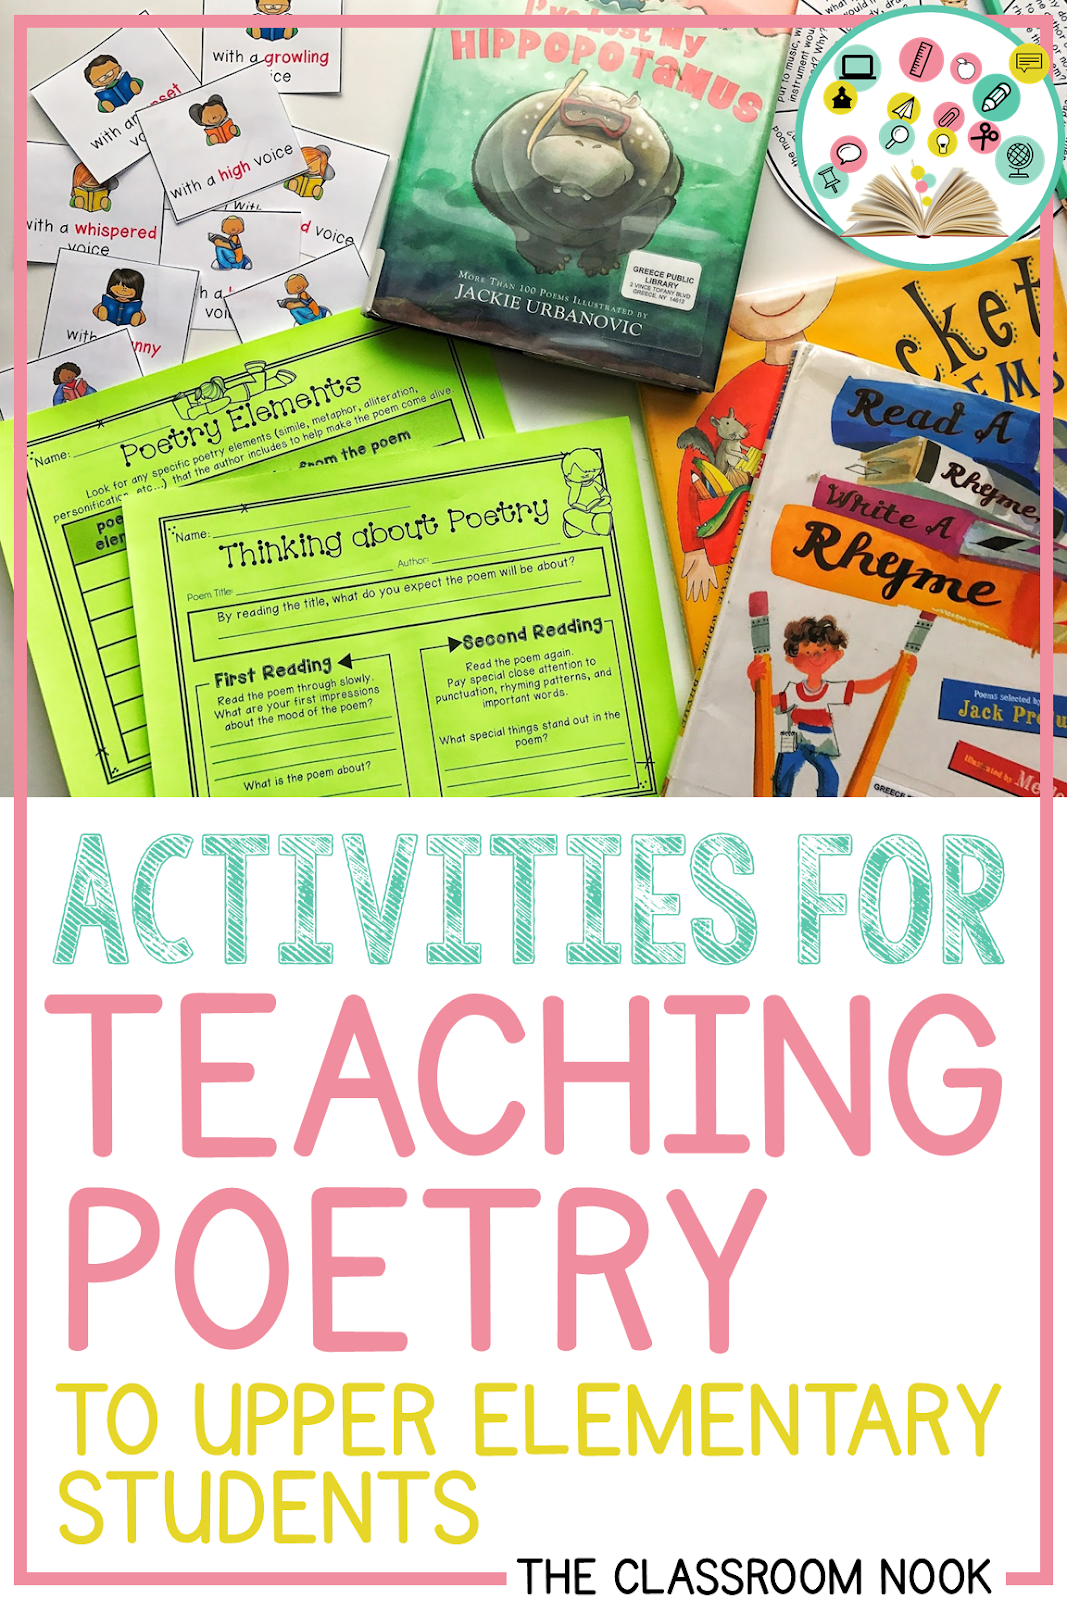 This blog post from The Classroom Nook is loaded with activities, games, teaching strategies, and even online poetry resources to help teach poetry in your third grade, fourth grade, or fifth grade classroom during National Poetry Month or any time of the school year! #teachingpoetry #poetry #nationalpoetrymonth #thirdgrade #fourthgrade #fifthgrade